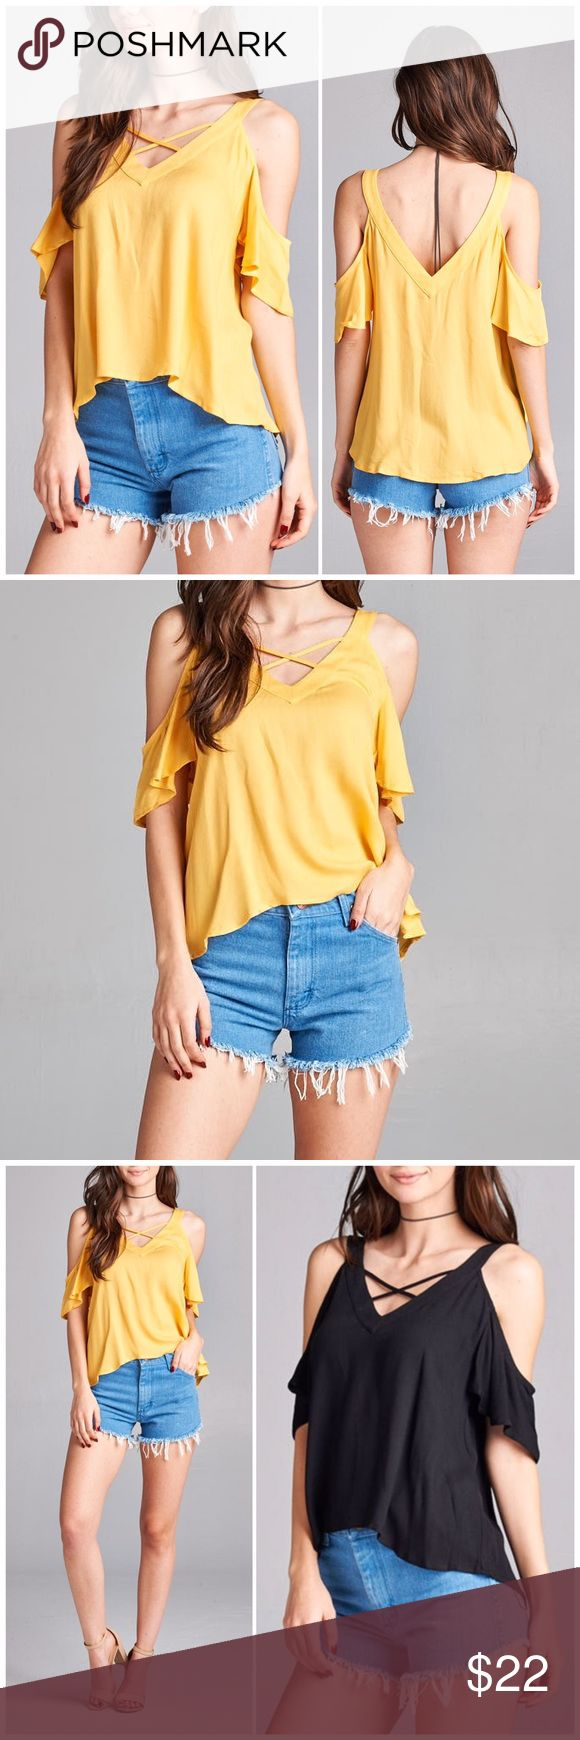 Cold Shoulder Strappy Top Yellow Cold Shoulder Strappy v neck top. Fits true to size small 4/6, medium 8/10 and large 12. 100% Rayon. Available in other colors in my closet Tops